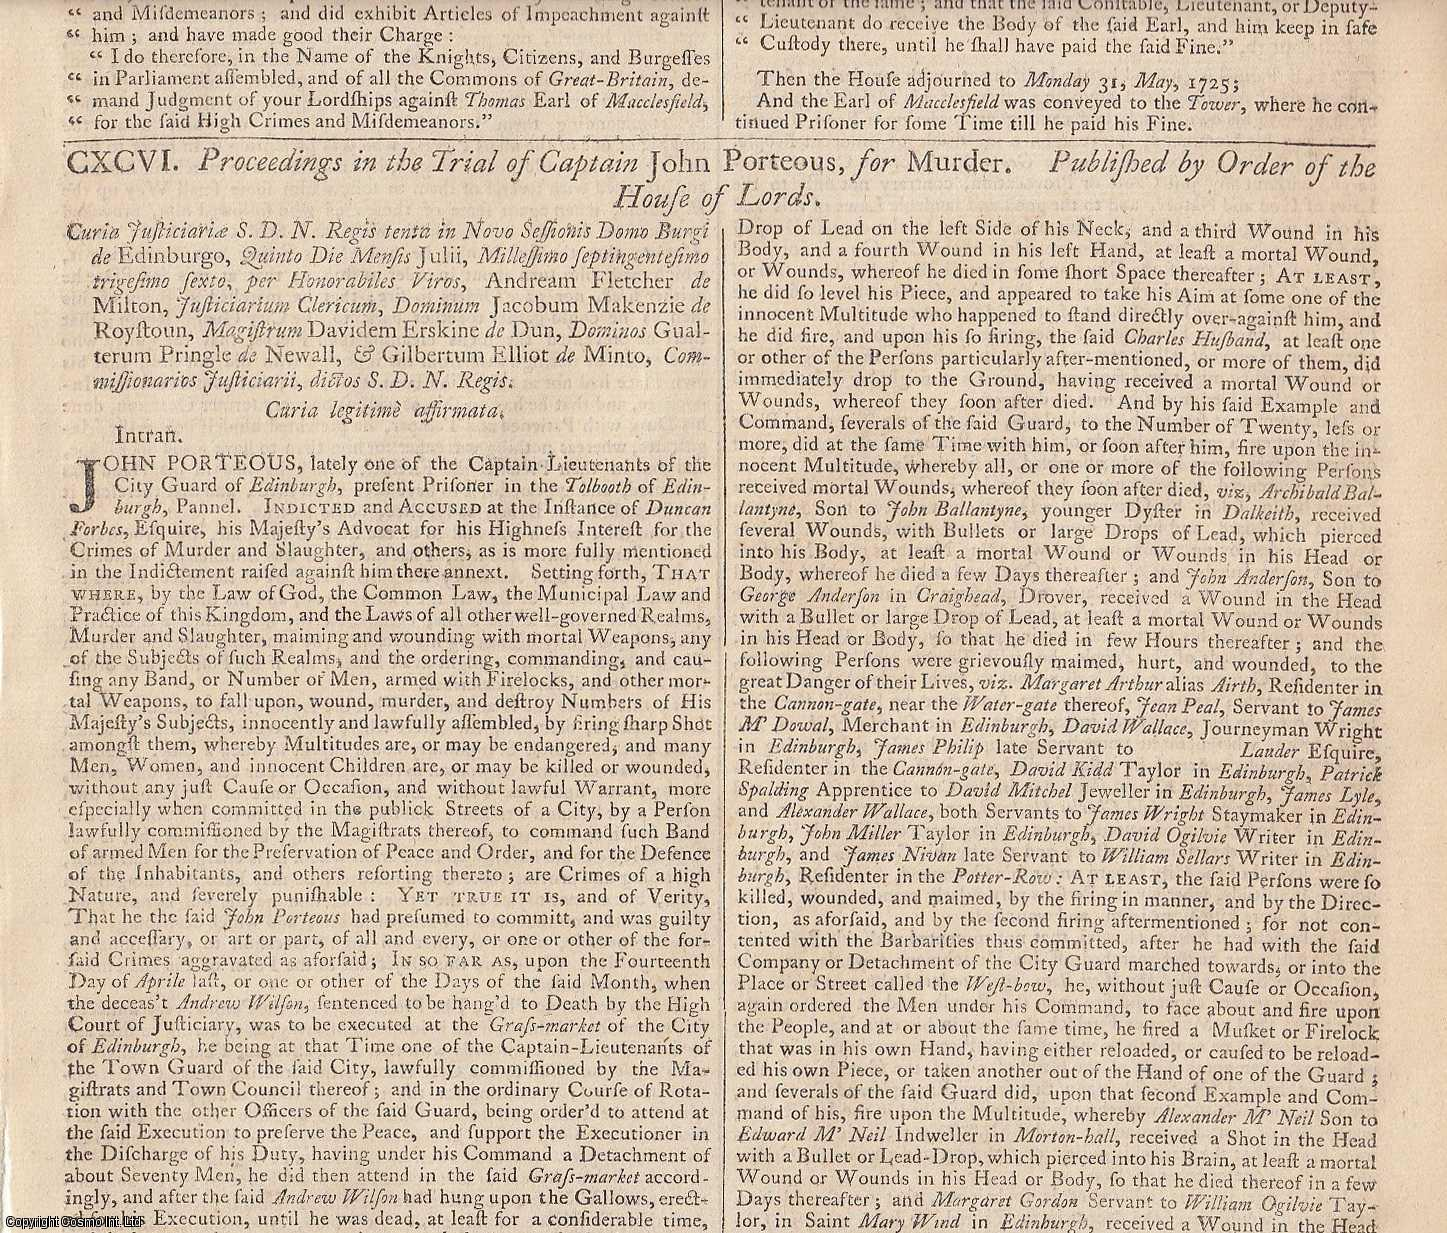 PORTEOUS RIOT.  Proceedings in the Trial of Captain John Porteous, for Murder. Published by Order of the House of Commons. 1725., [Trial].